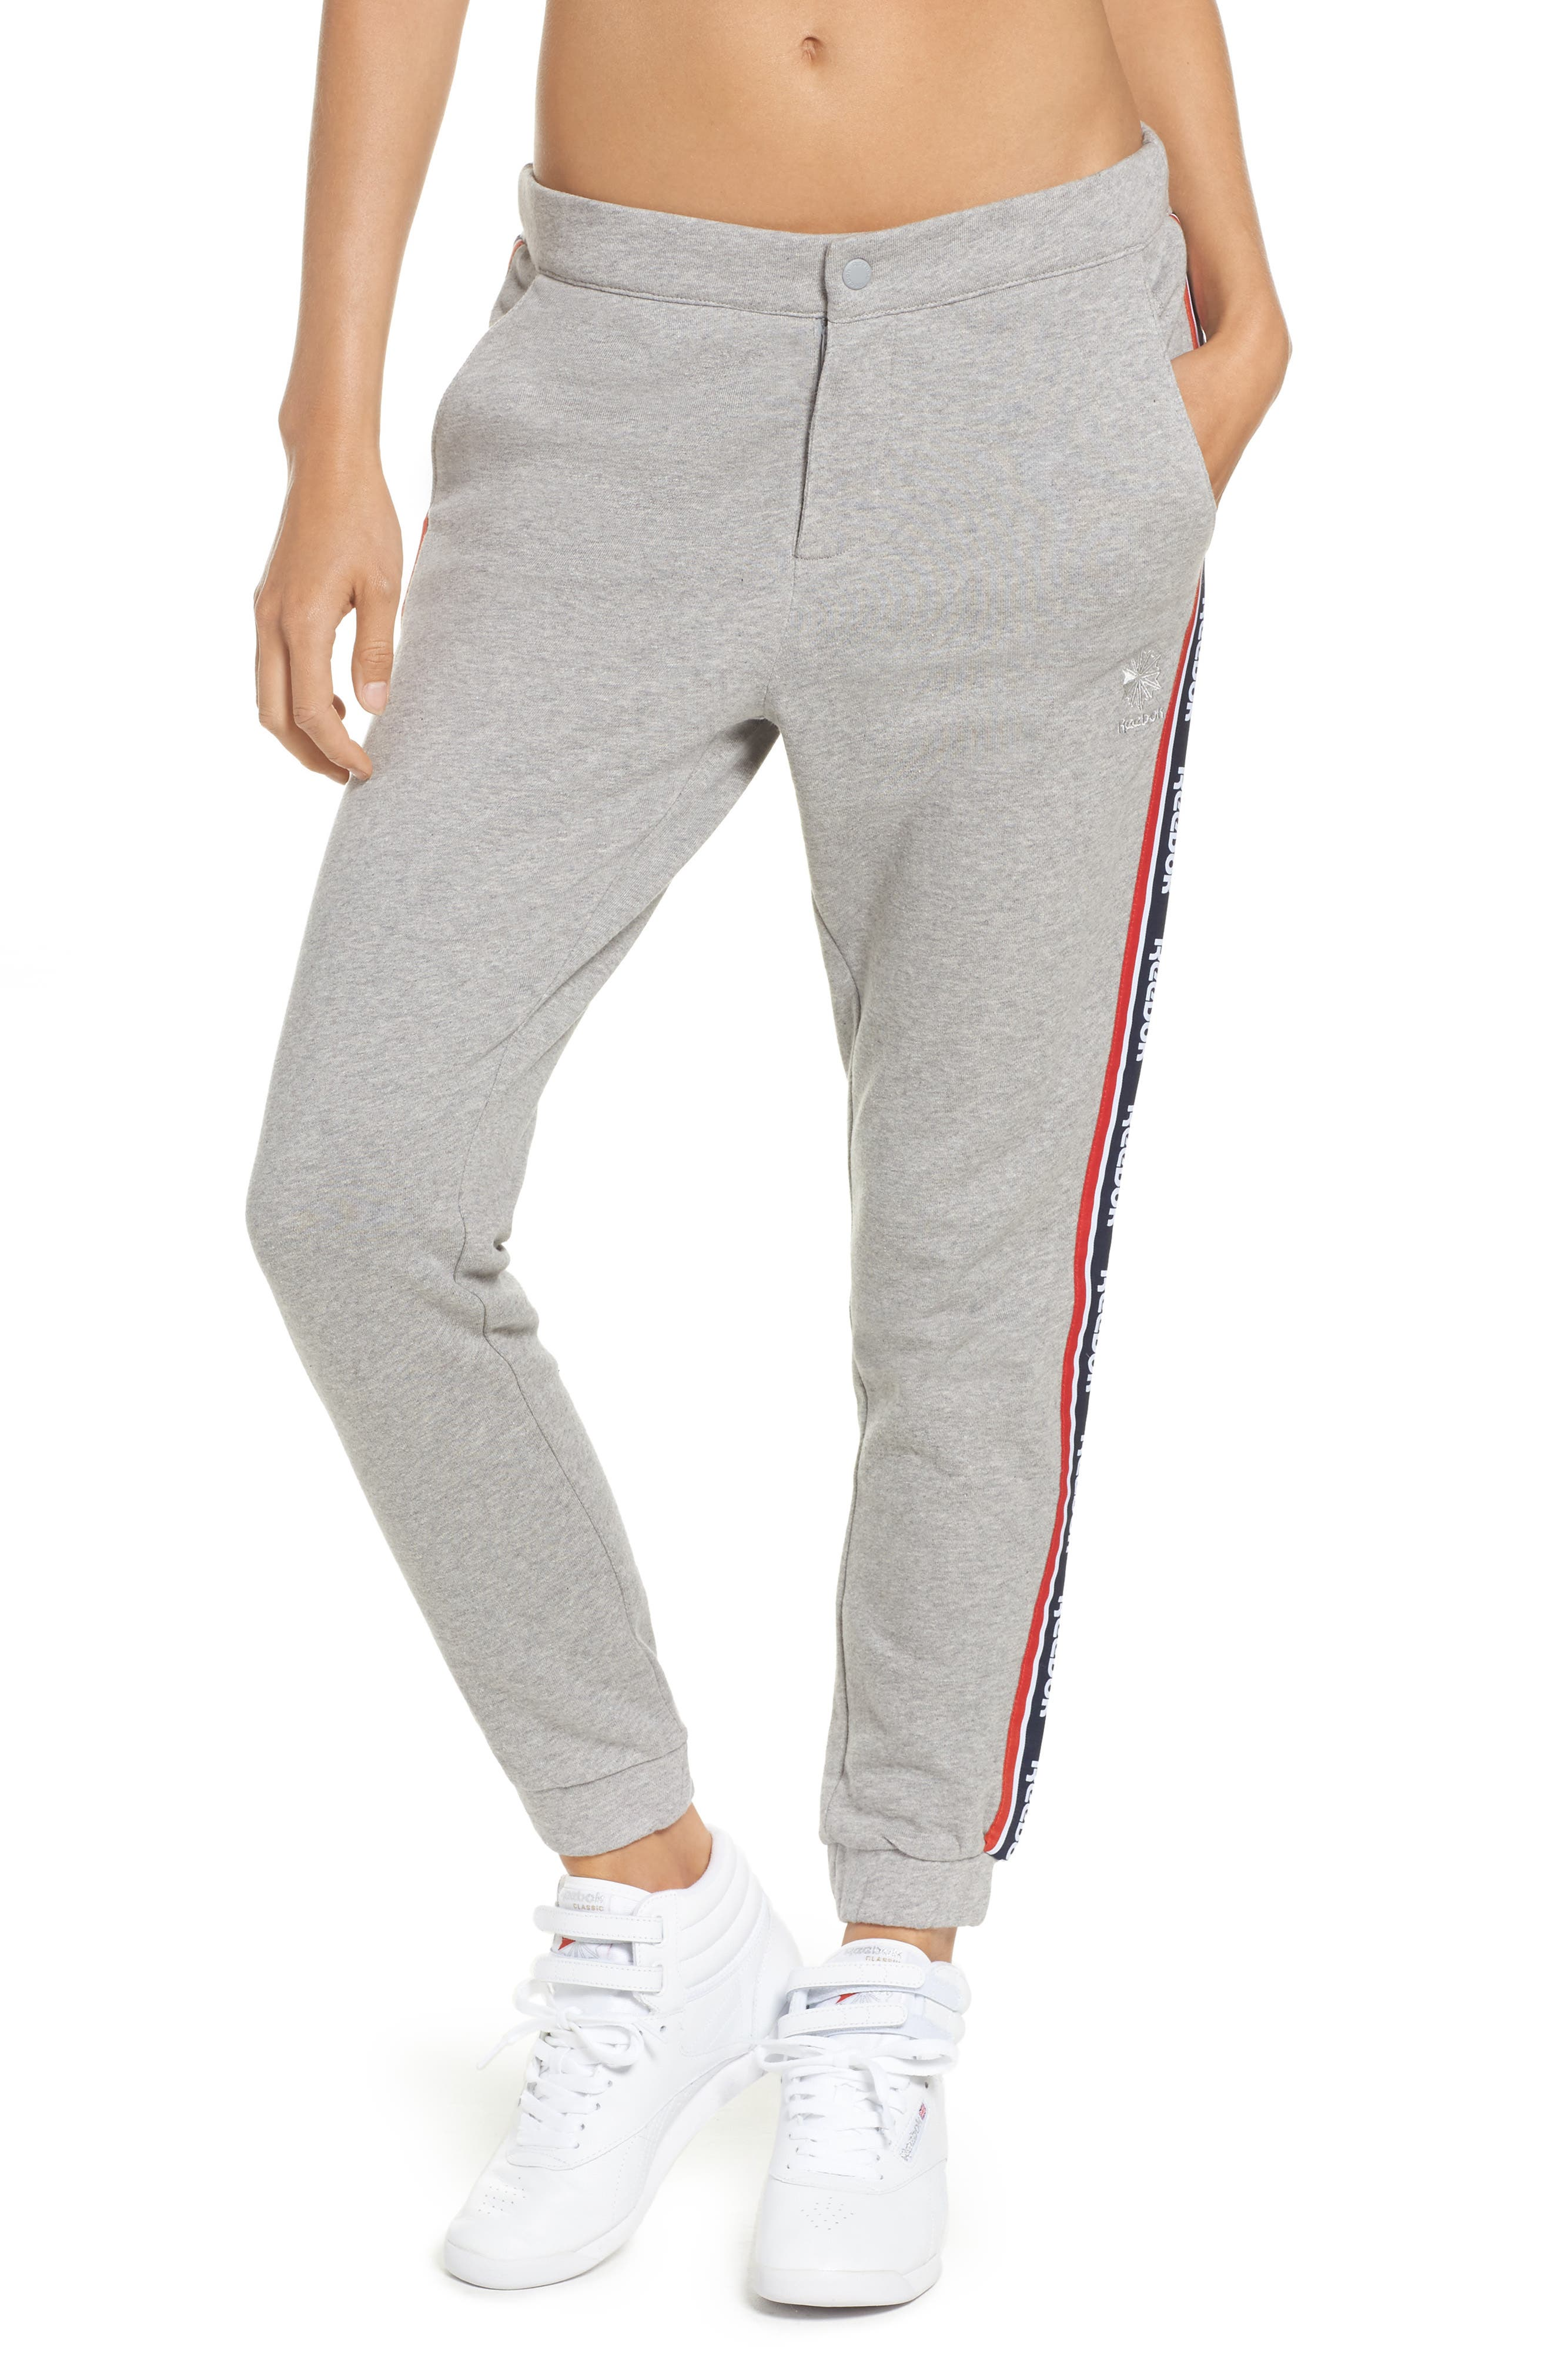 French Terry Pants,                         Main,                         color,